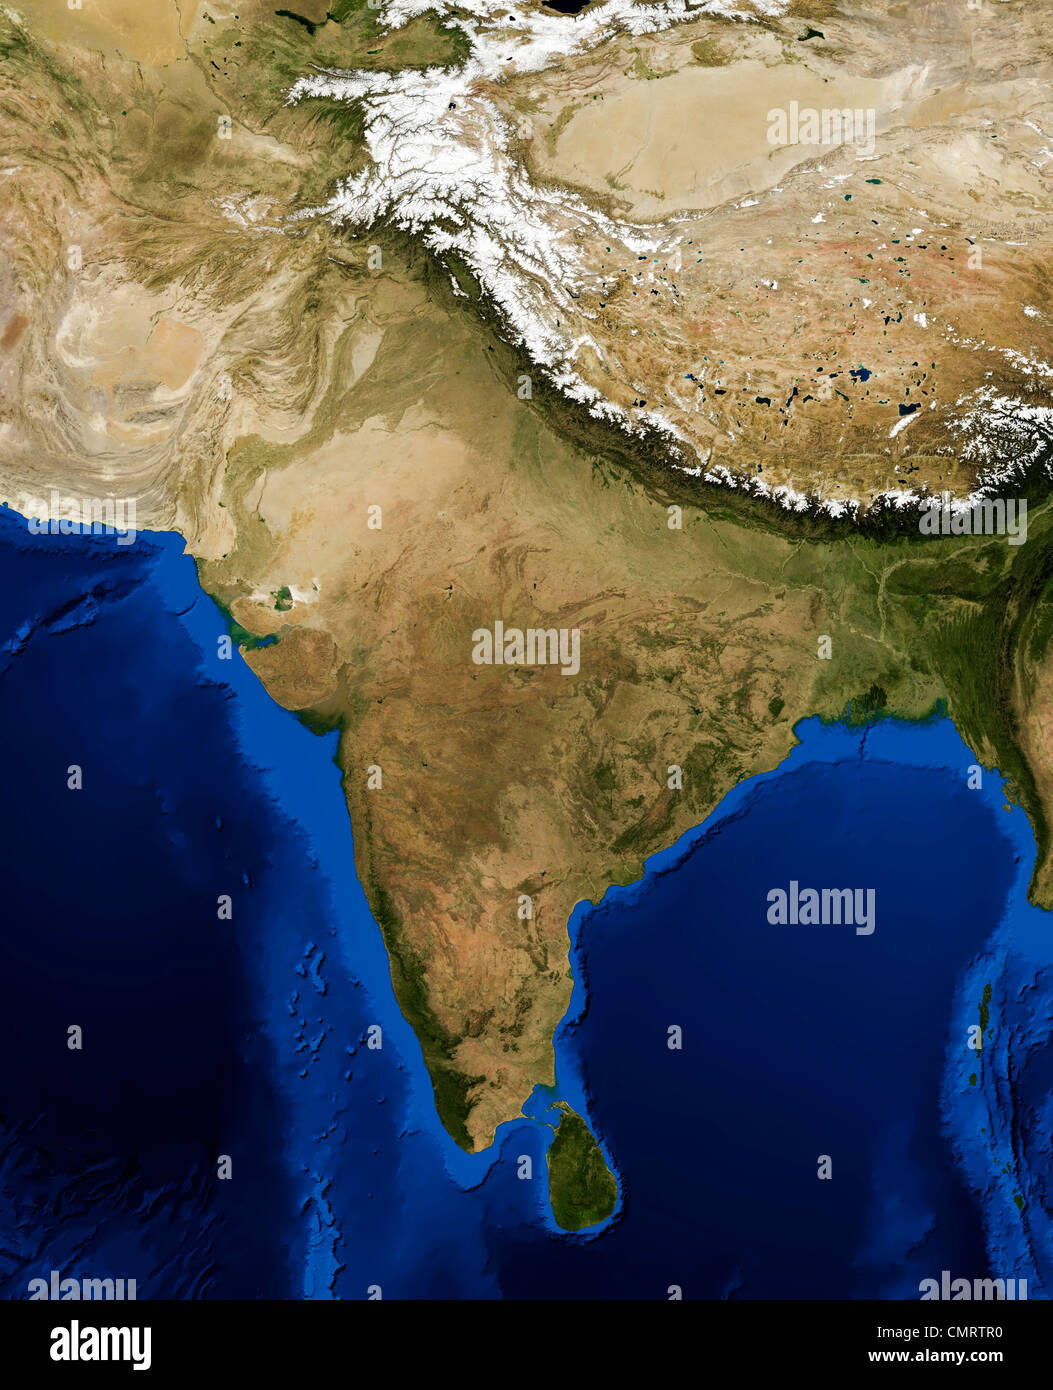 map of india satellite view India Bangladesh Map High Resolution Stock Photography And Images map of india satellite view